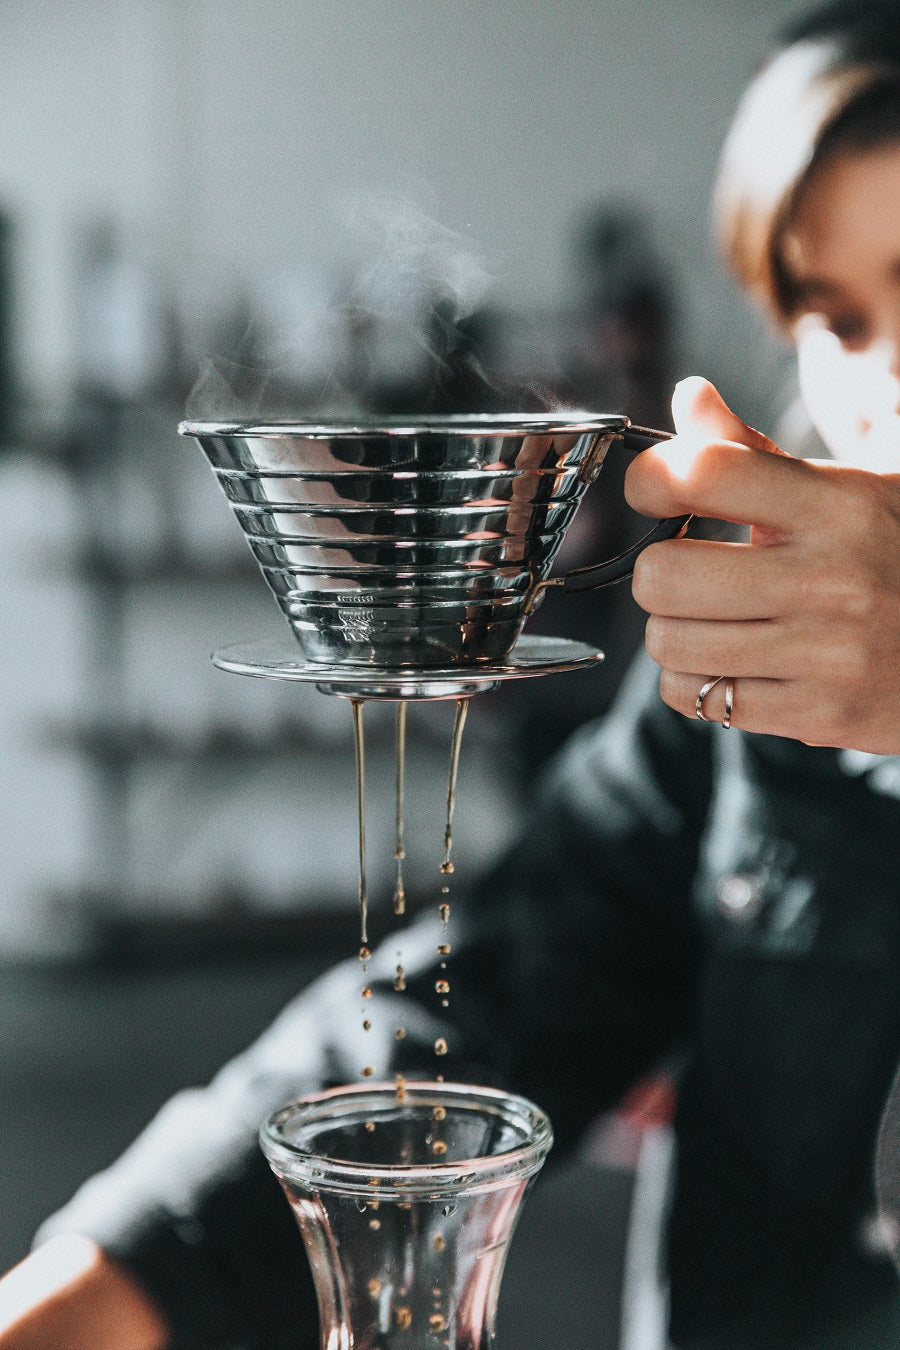 steam coming out of a stainless steel pour over that is brewing coffee into a glass carafe